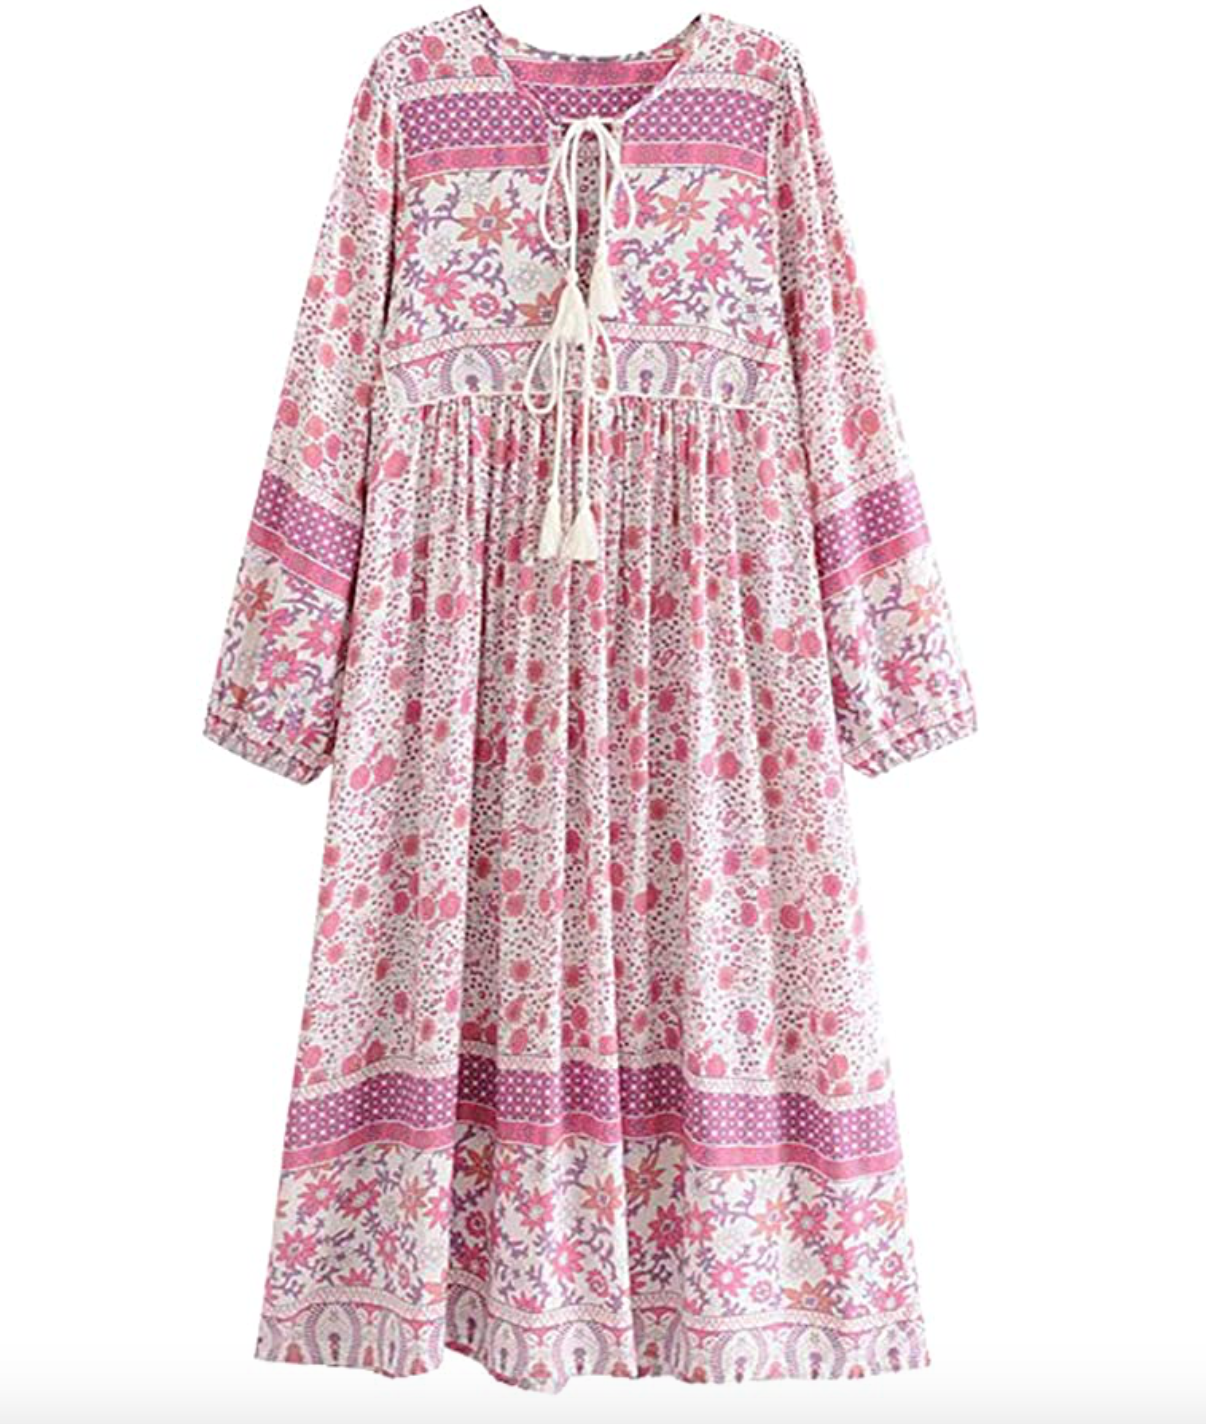 R Vivimos Womens Long Sleeve Floral Print V Neck Bohemian Midi Dress